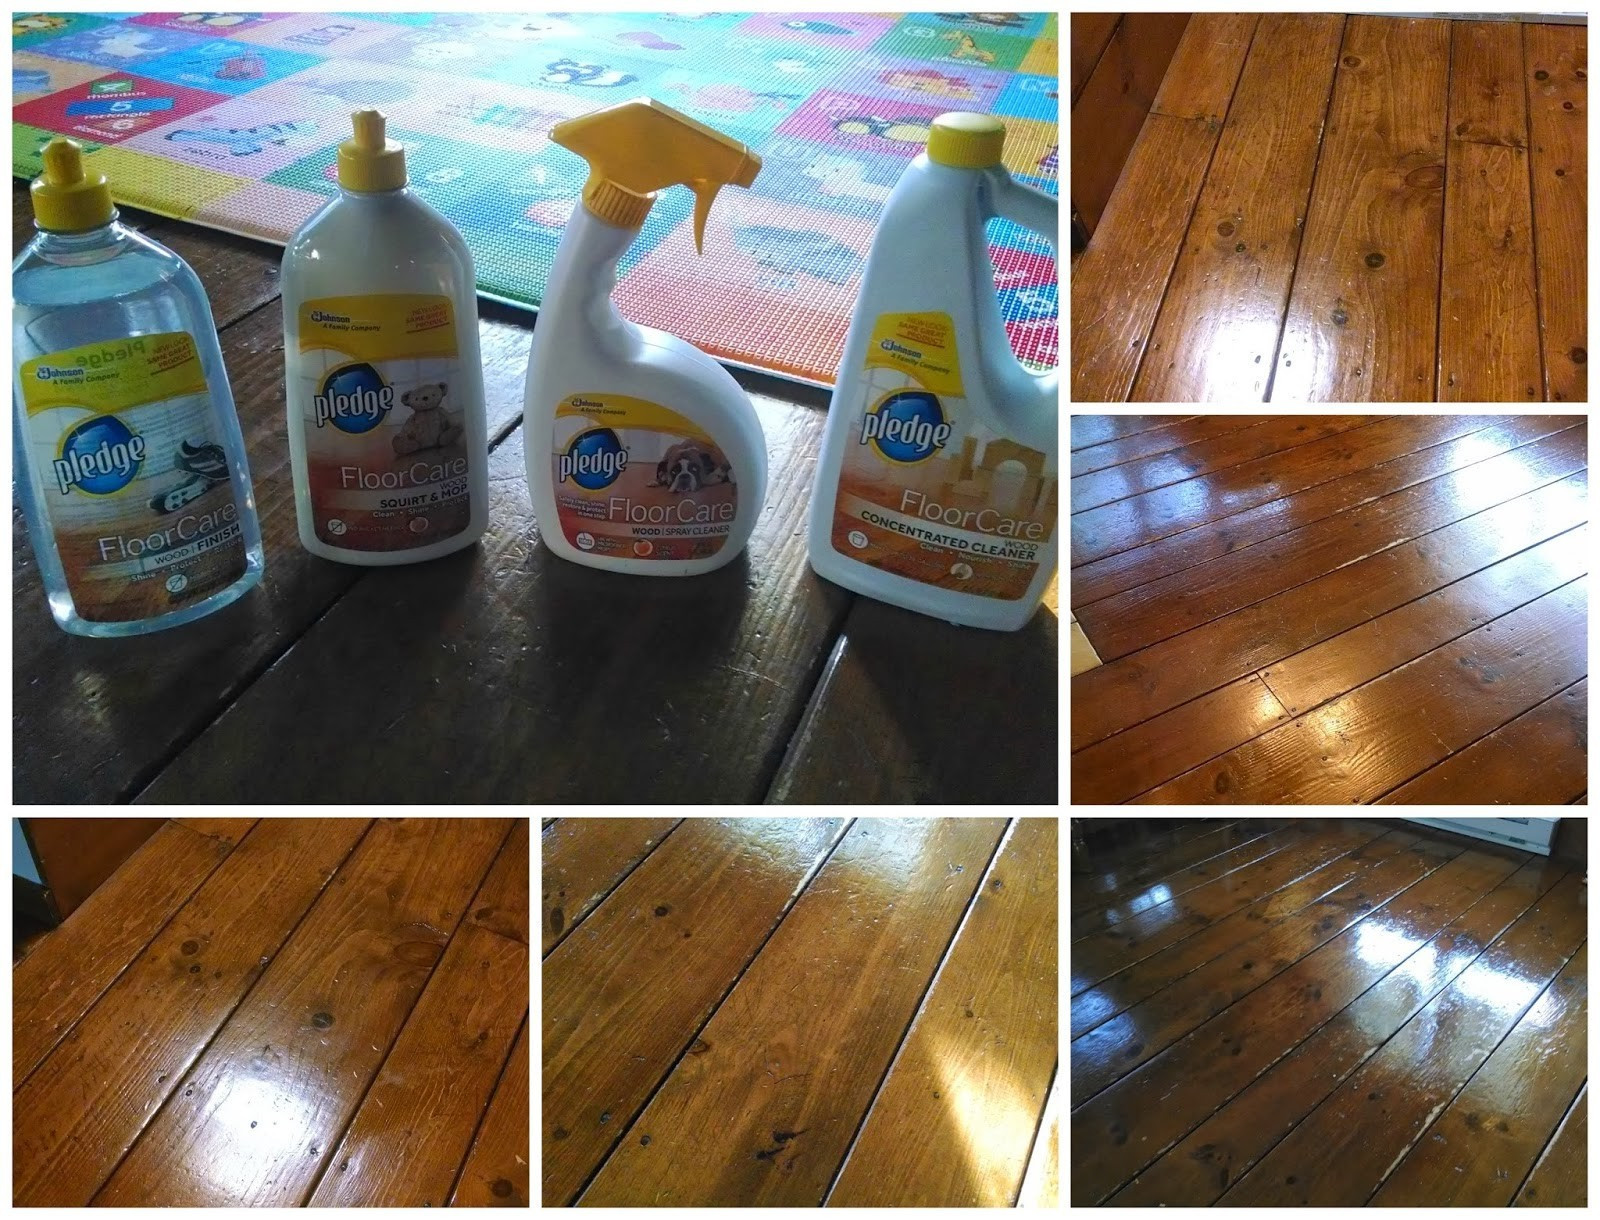 using bona hardwood floor cleaner of 17 awesome what to use to clean hardwood floors image dizpos com intended for what to use to clean hardwood floors fresh 24 best pics best ways to clean hardwood